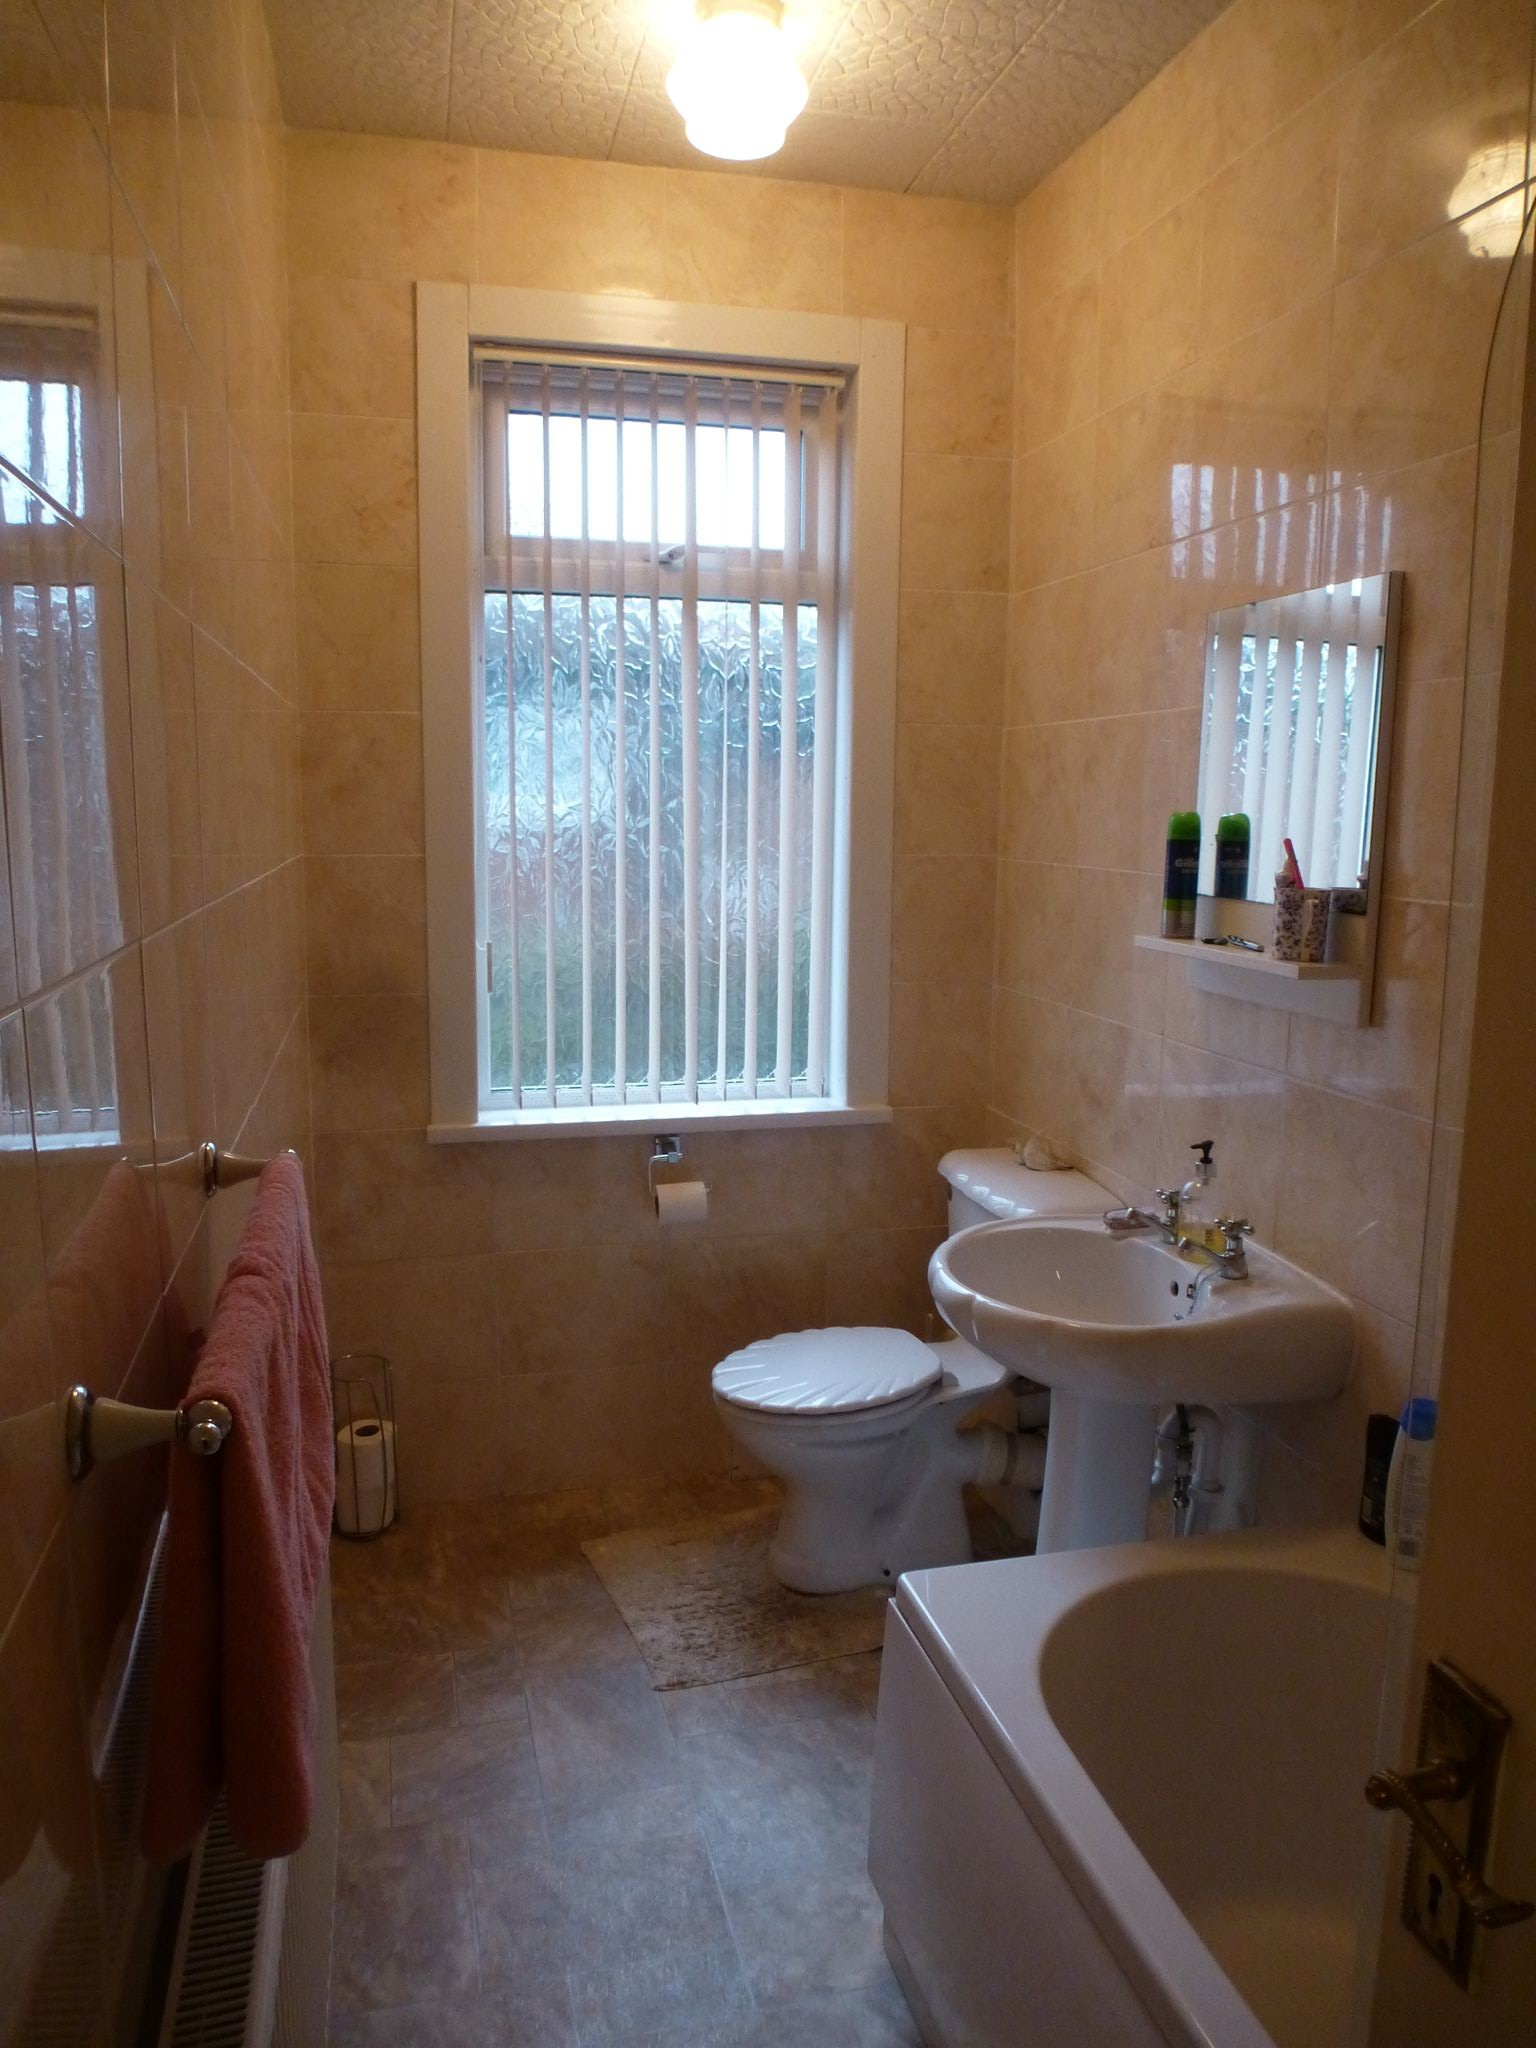 Image 2 of 3 of BATHROOM, on Accommodation Comprising for